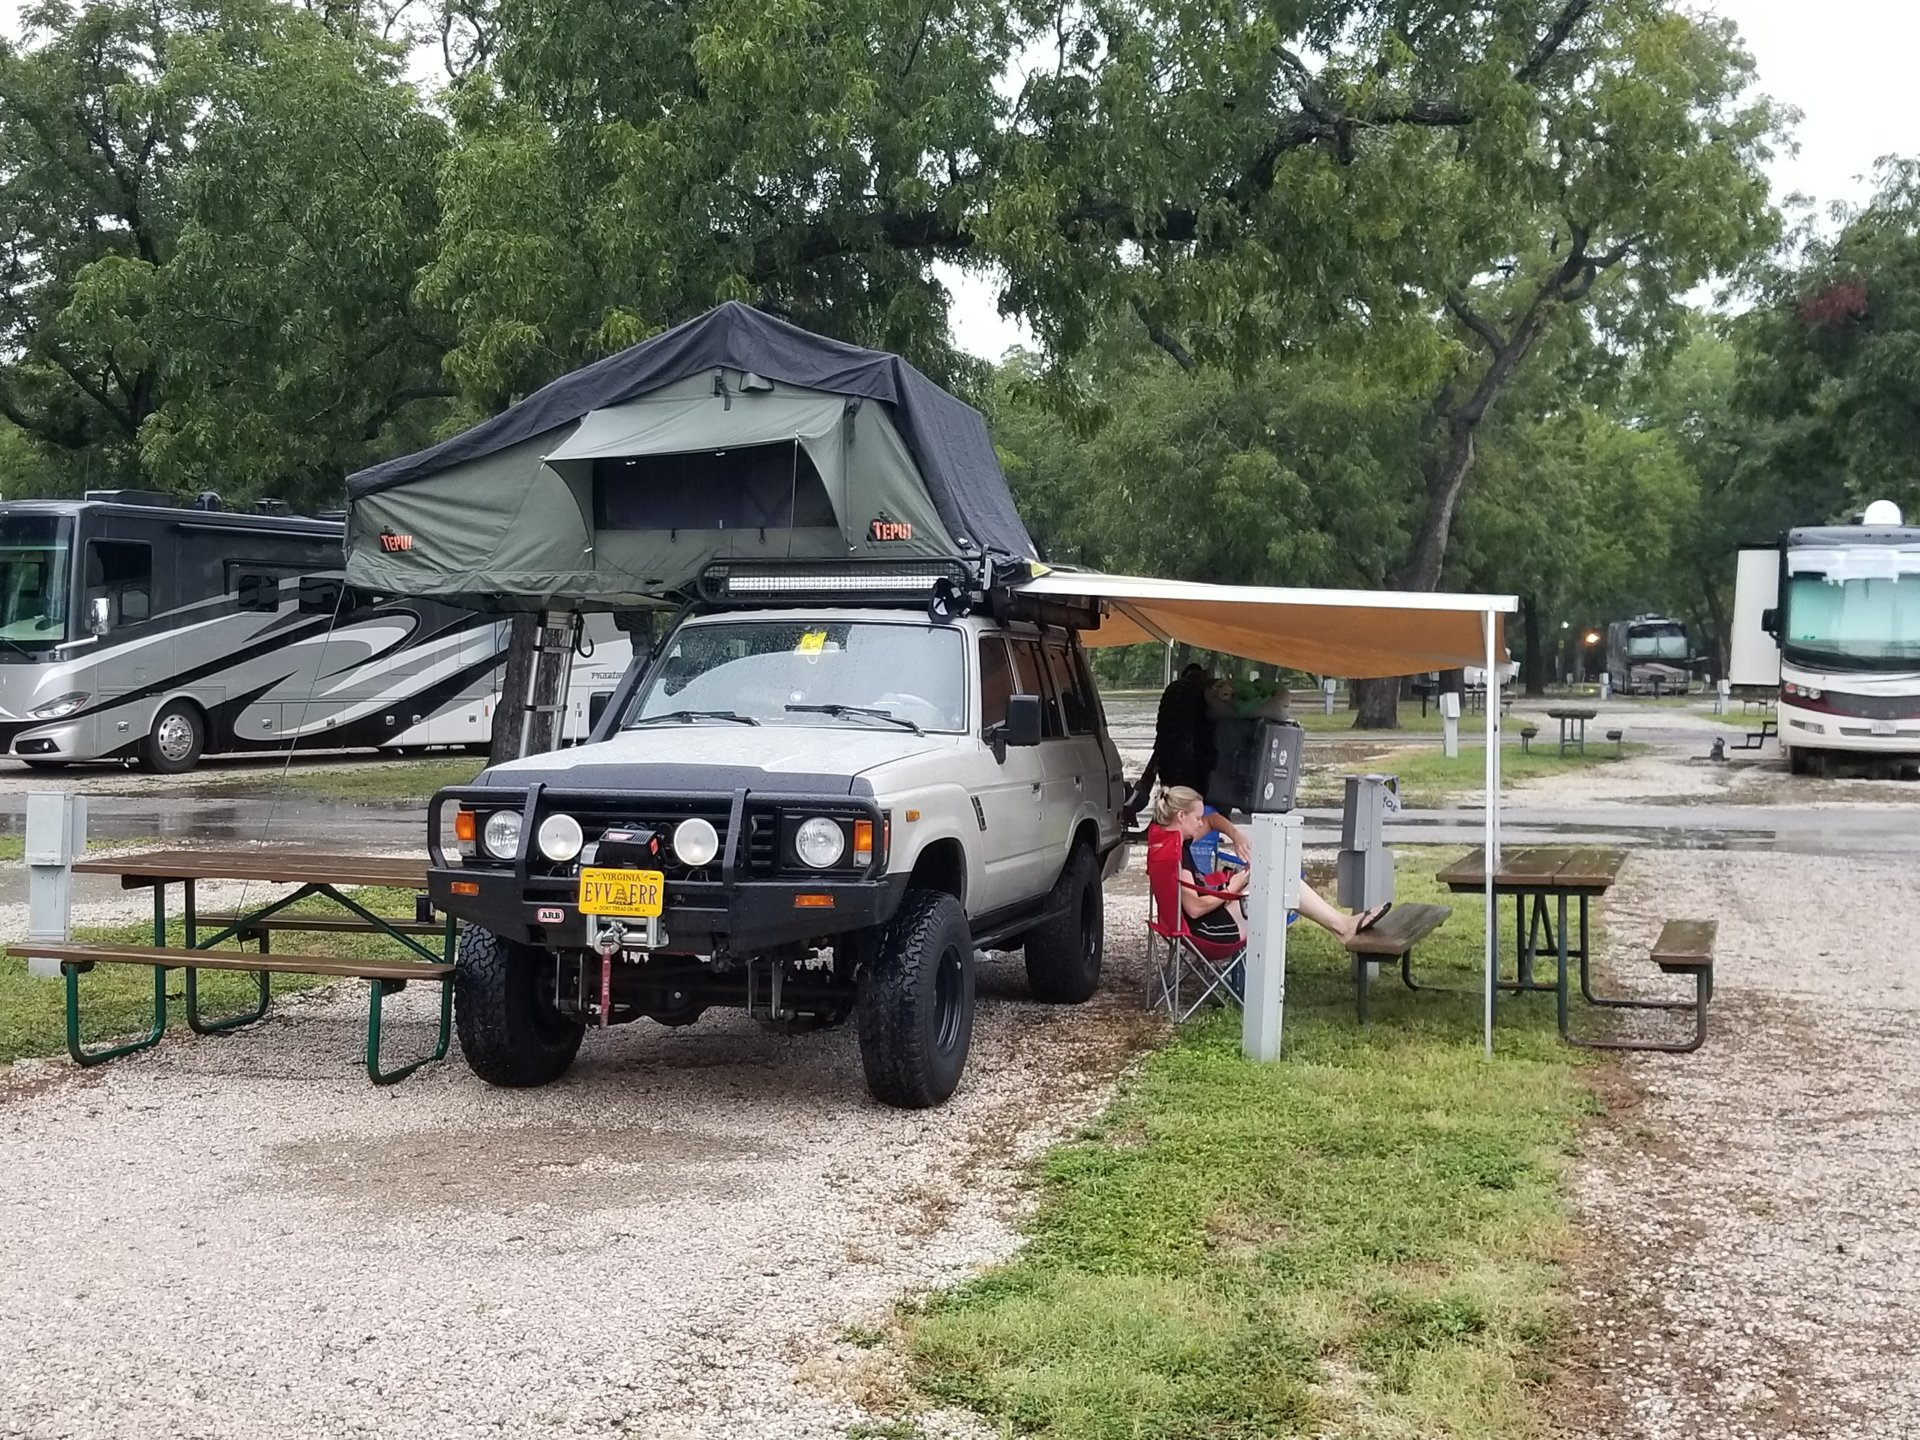 20170926_173241.jpg ... & Weight limit for roof gutters on FJ60 Two rooftop tents? | IH8MUD ...